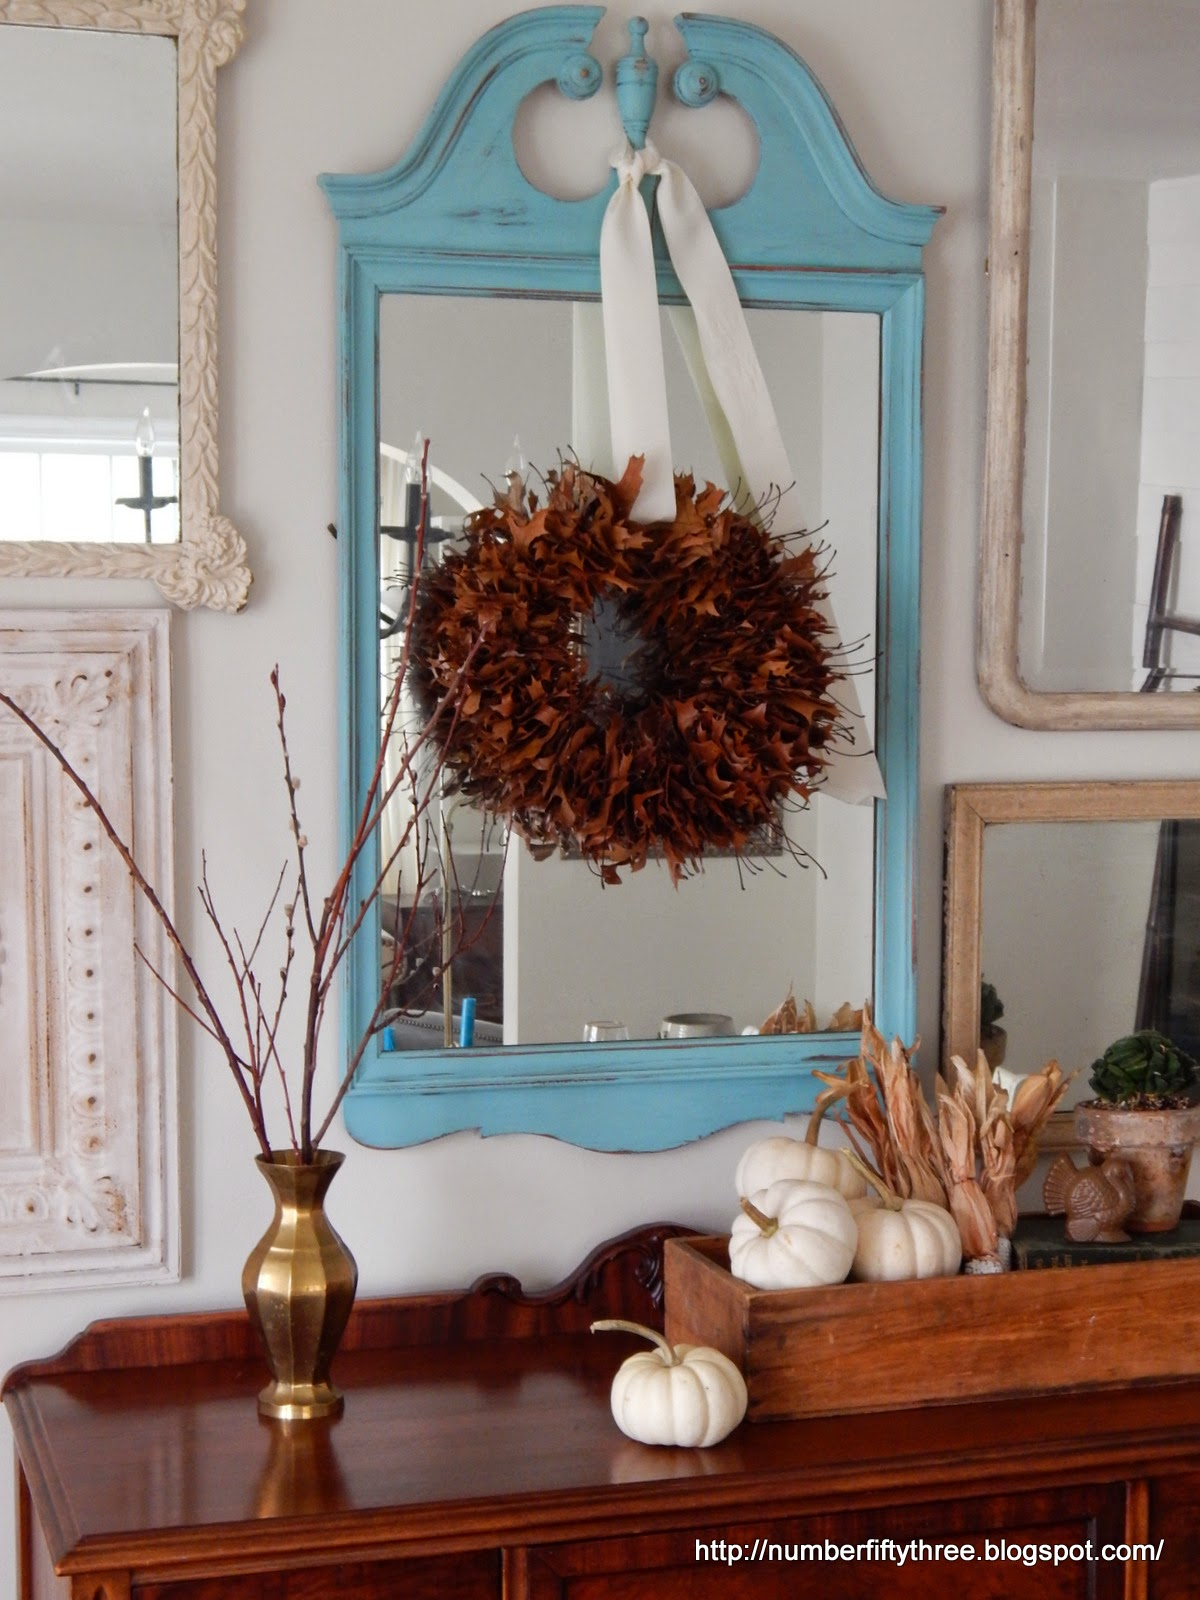 This oak leaf wreath make a great natural accent